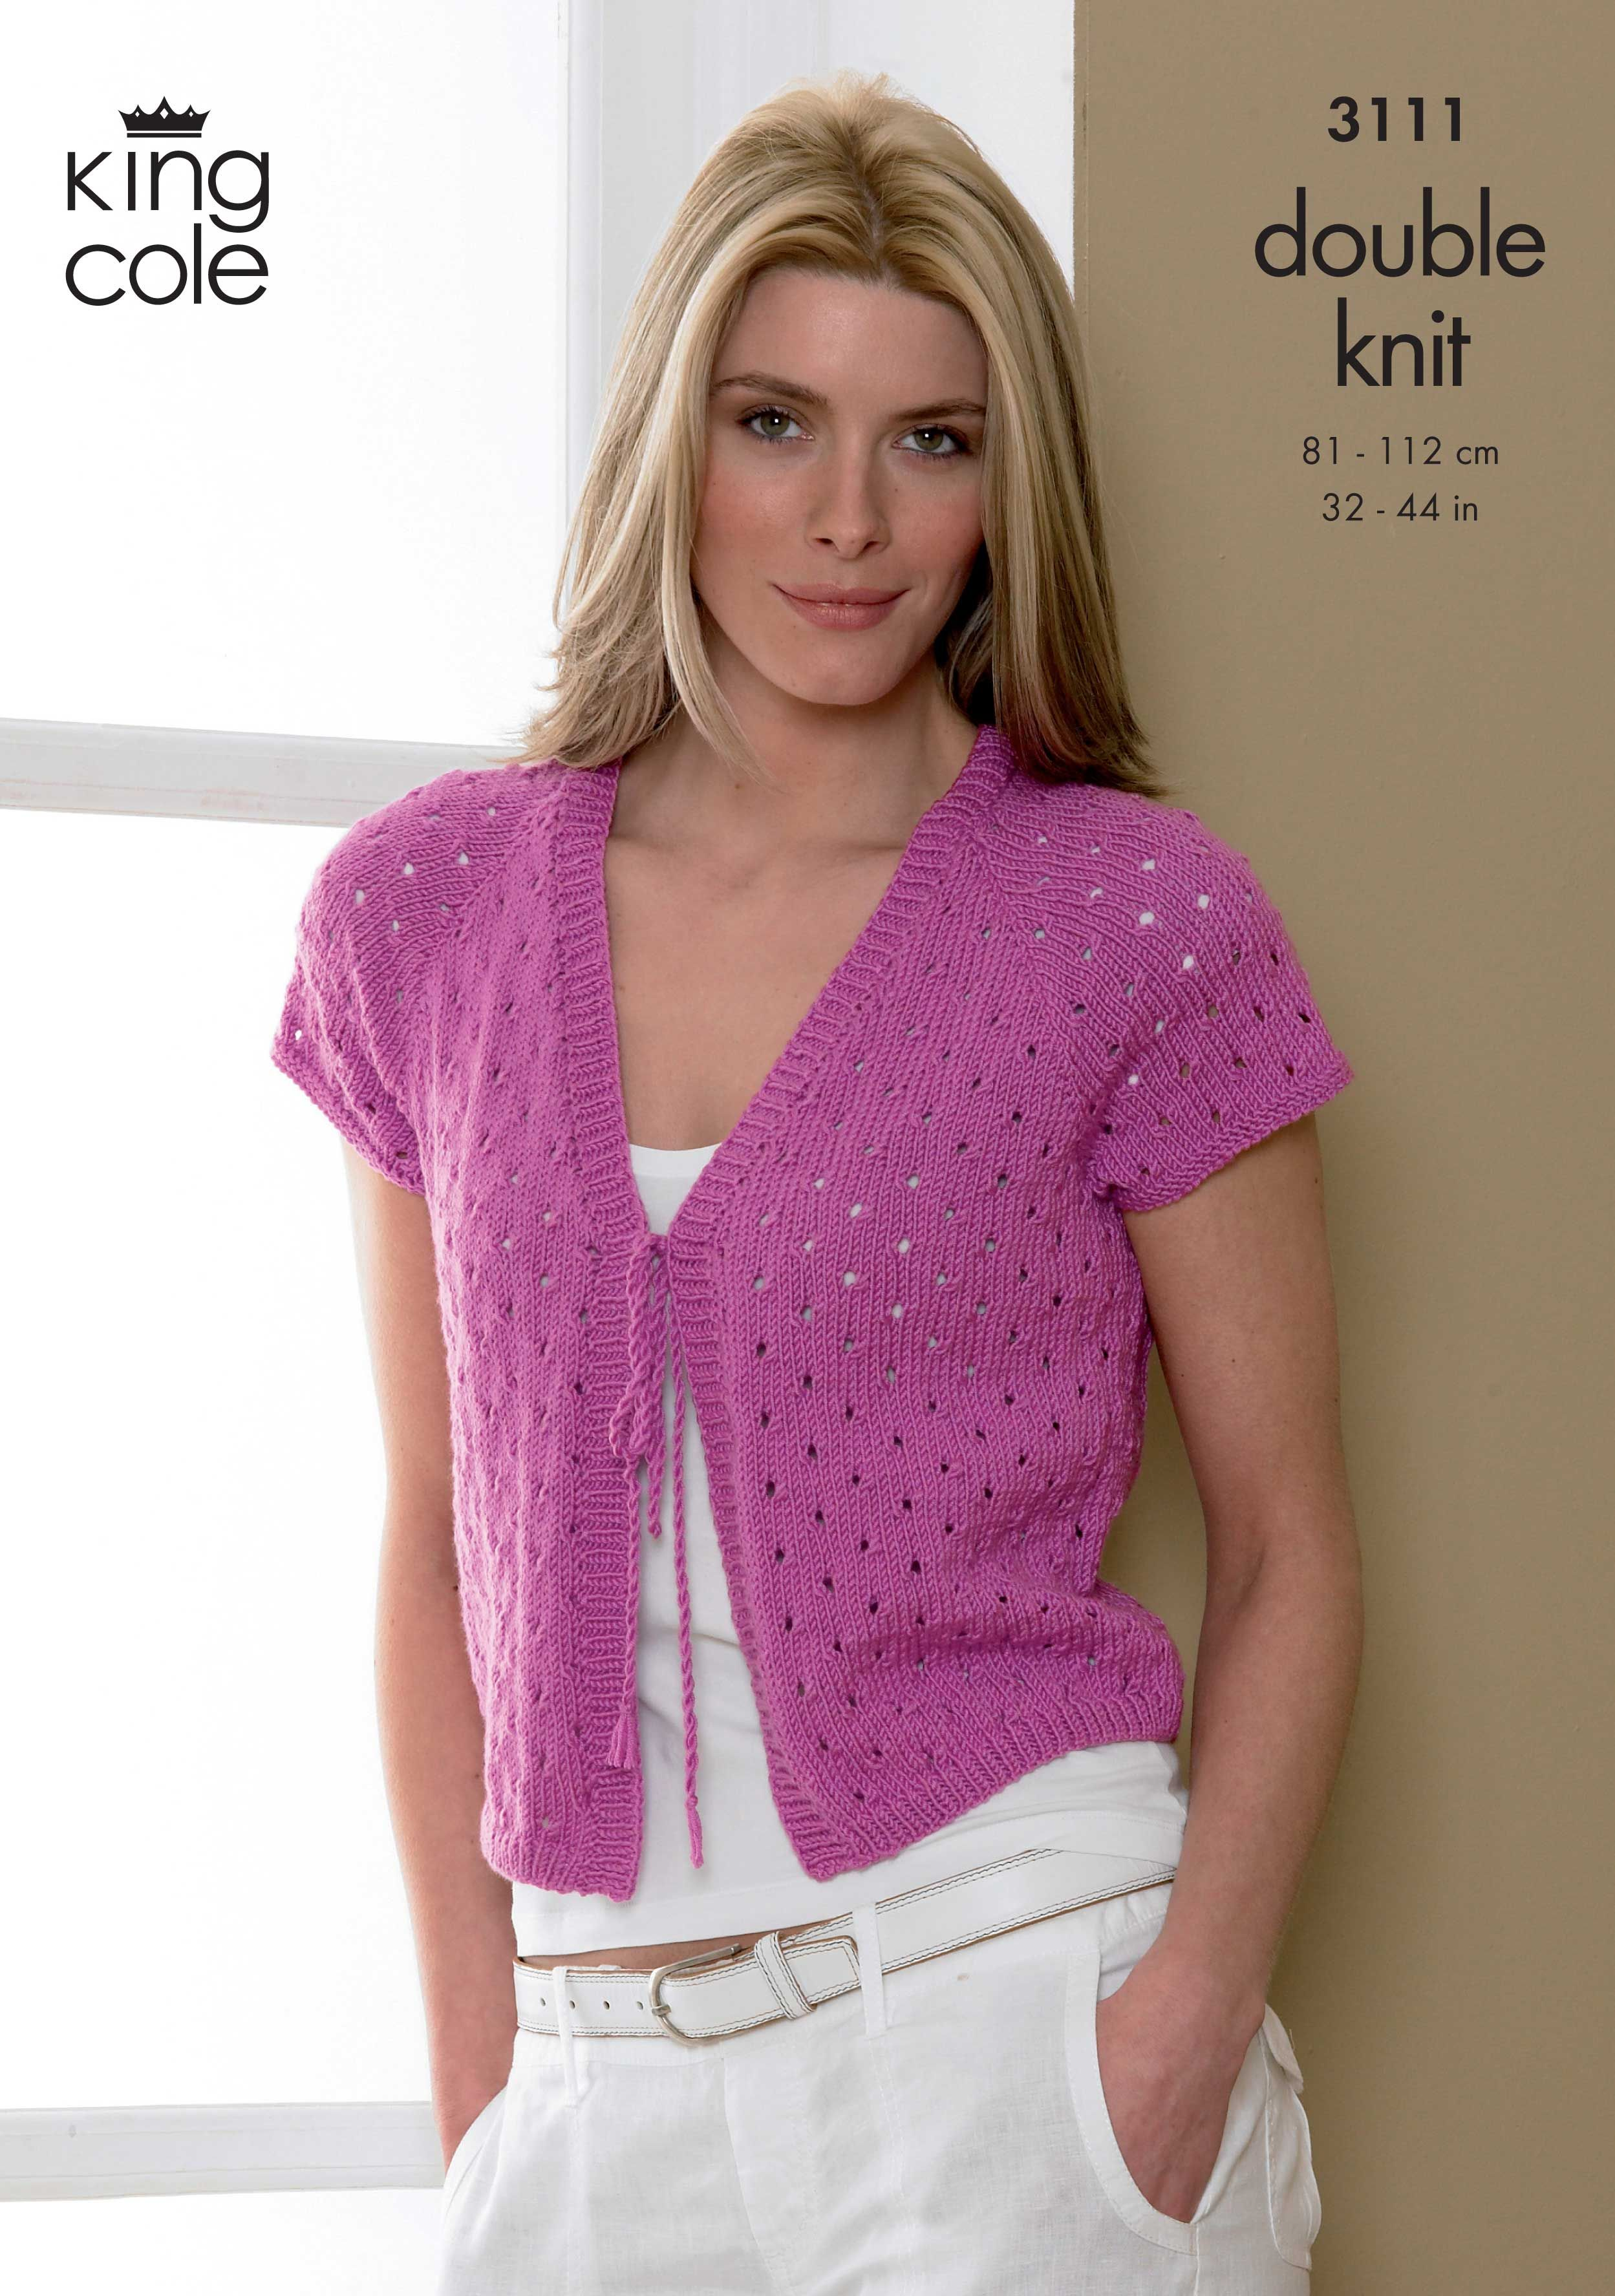 Tie fronted cropped cardigan - King Cole   Summer Cover ups   Pinterest